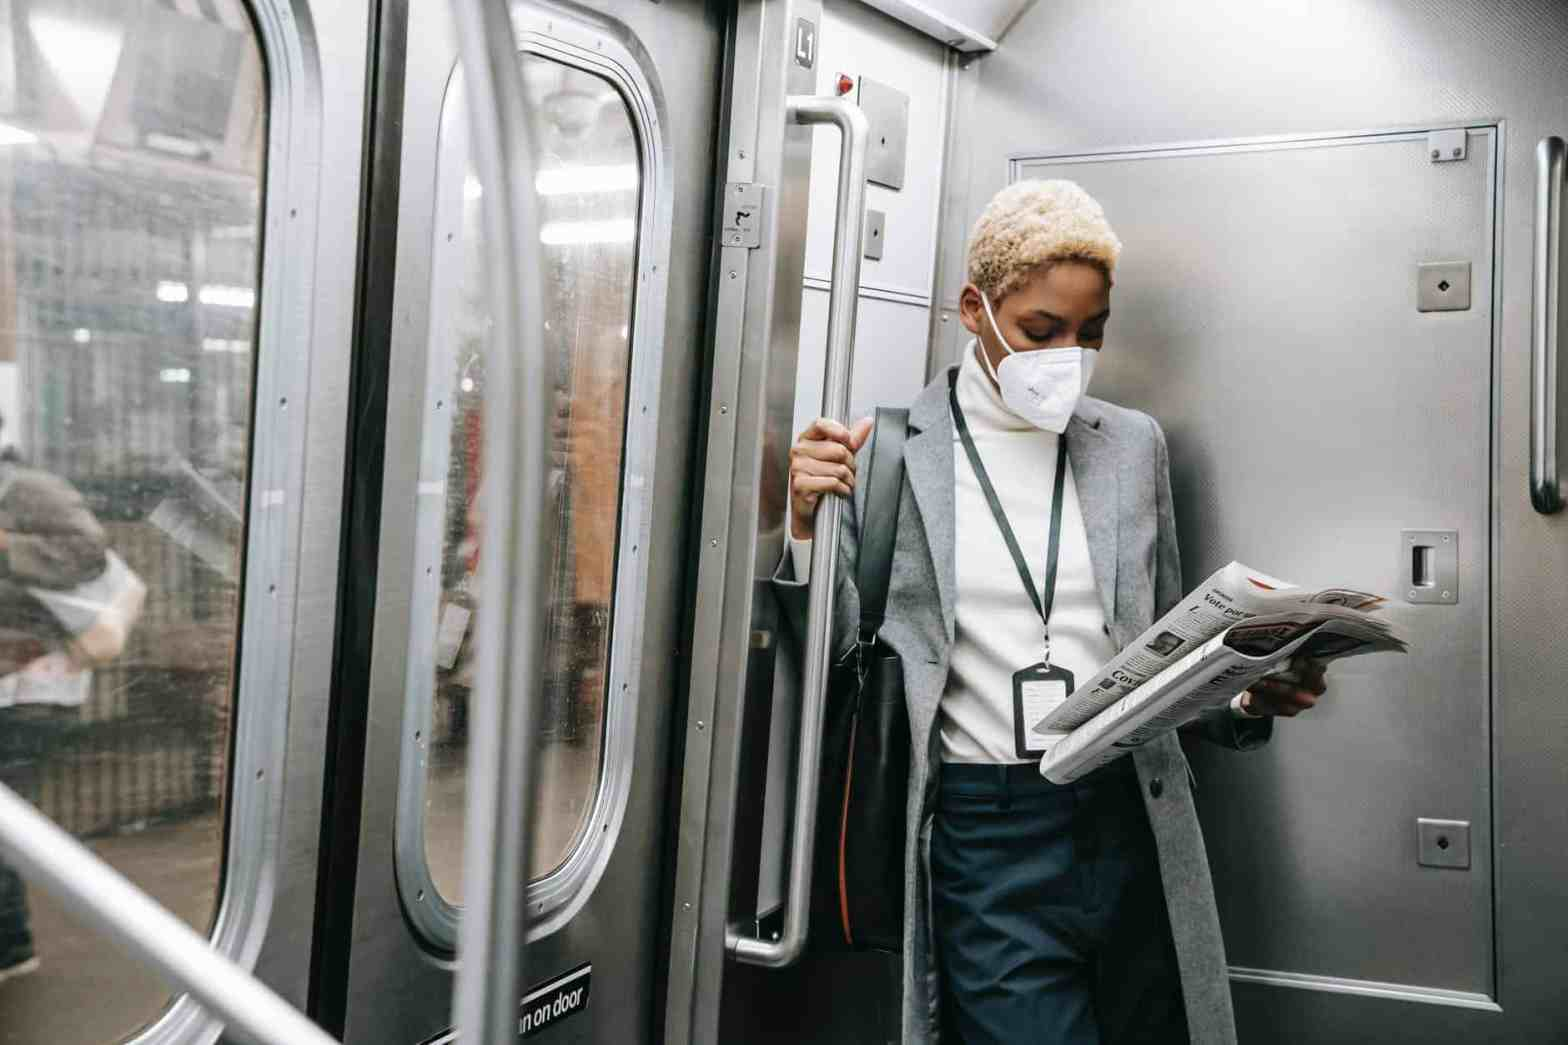 focused woman in mask, due to COVID-19 pandemic, reading newspaper in metro train